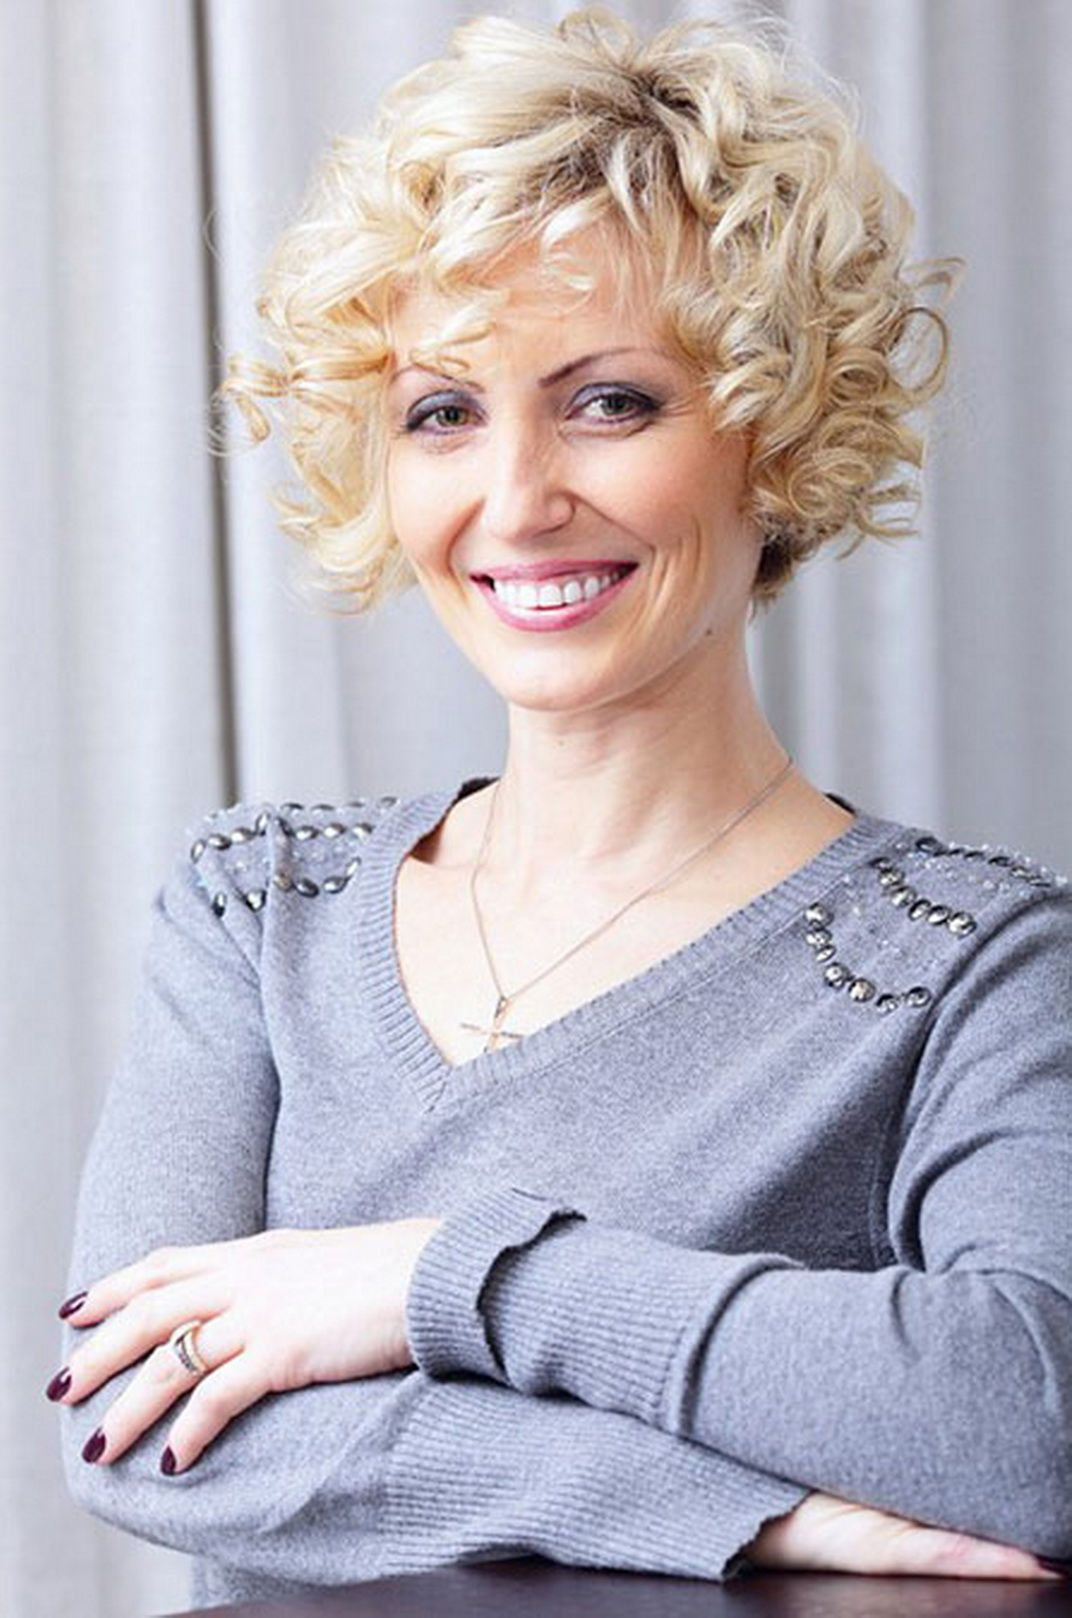 haircuts on pinterest cropped hairstyles over 50 and trendy hairstyles for over 50 trendy short hair trends